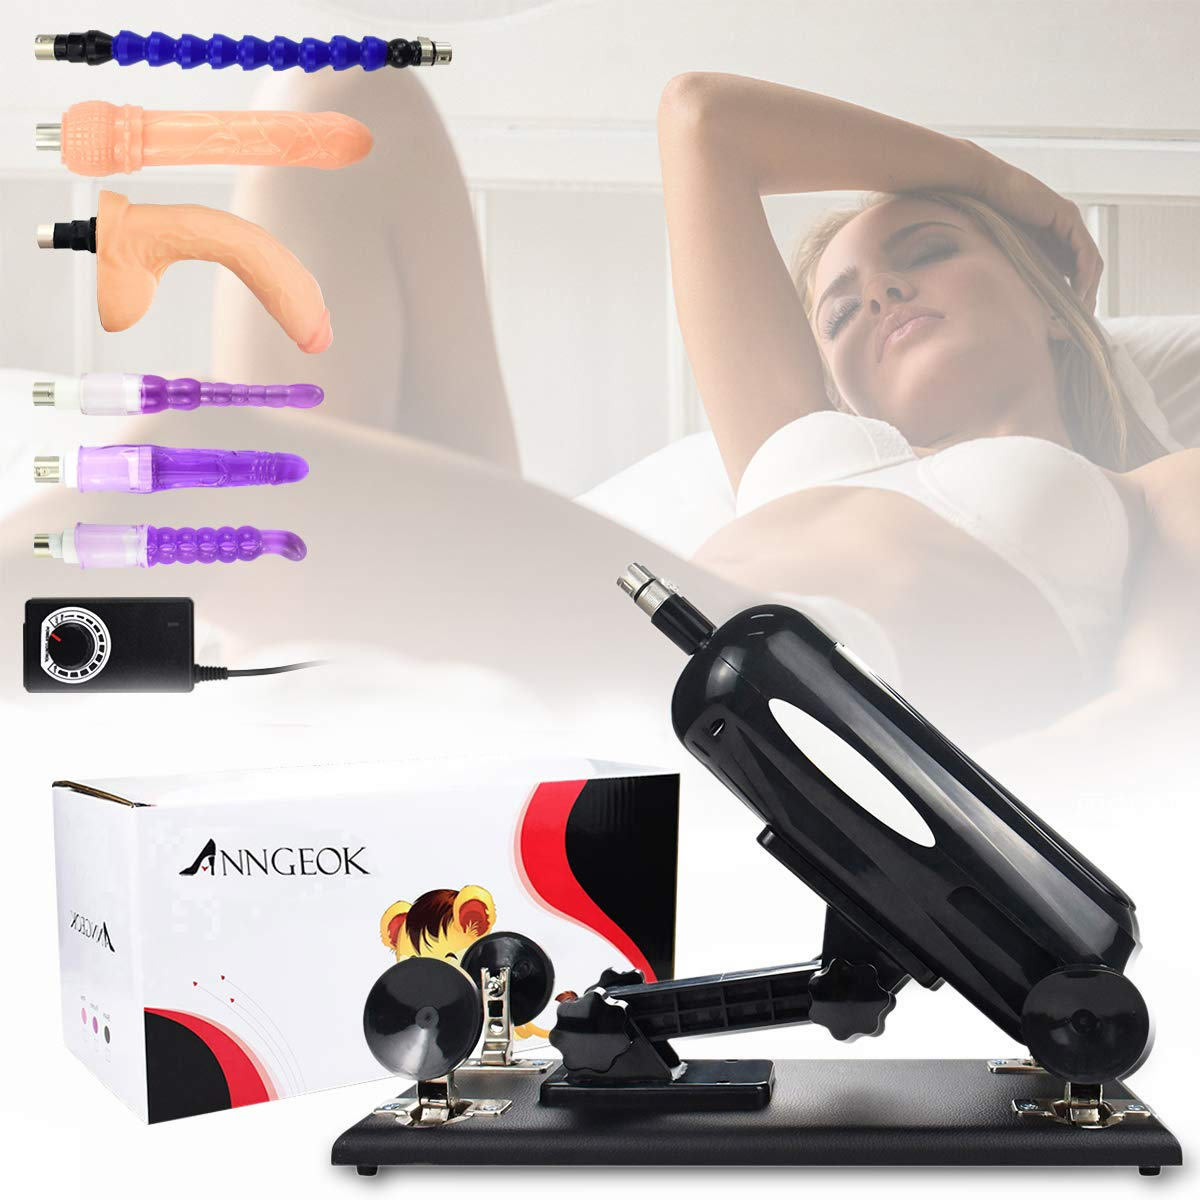 Stress Relaxation Women Massage Tool ANNGEOK Machine Sex with Stong Power